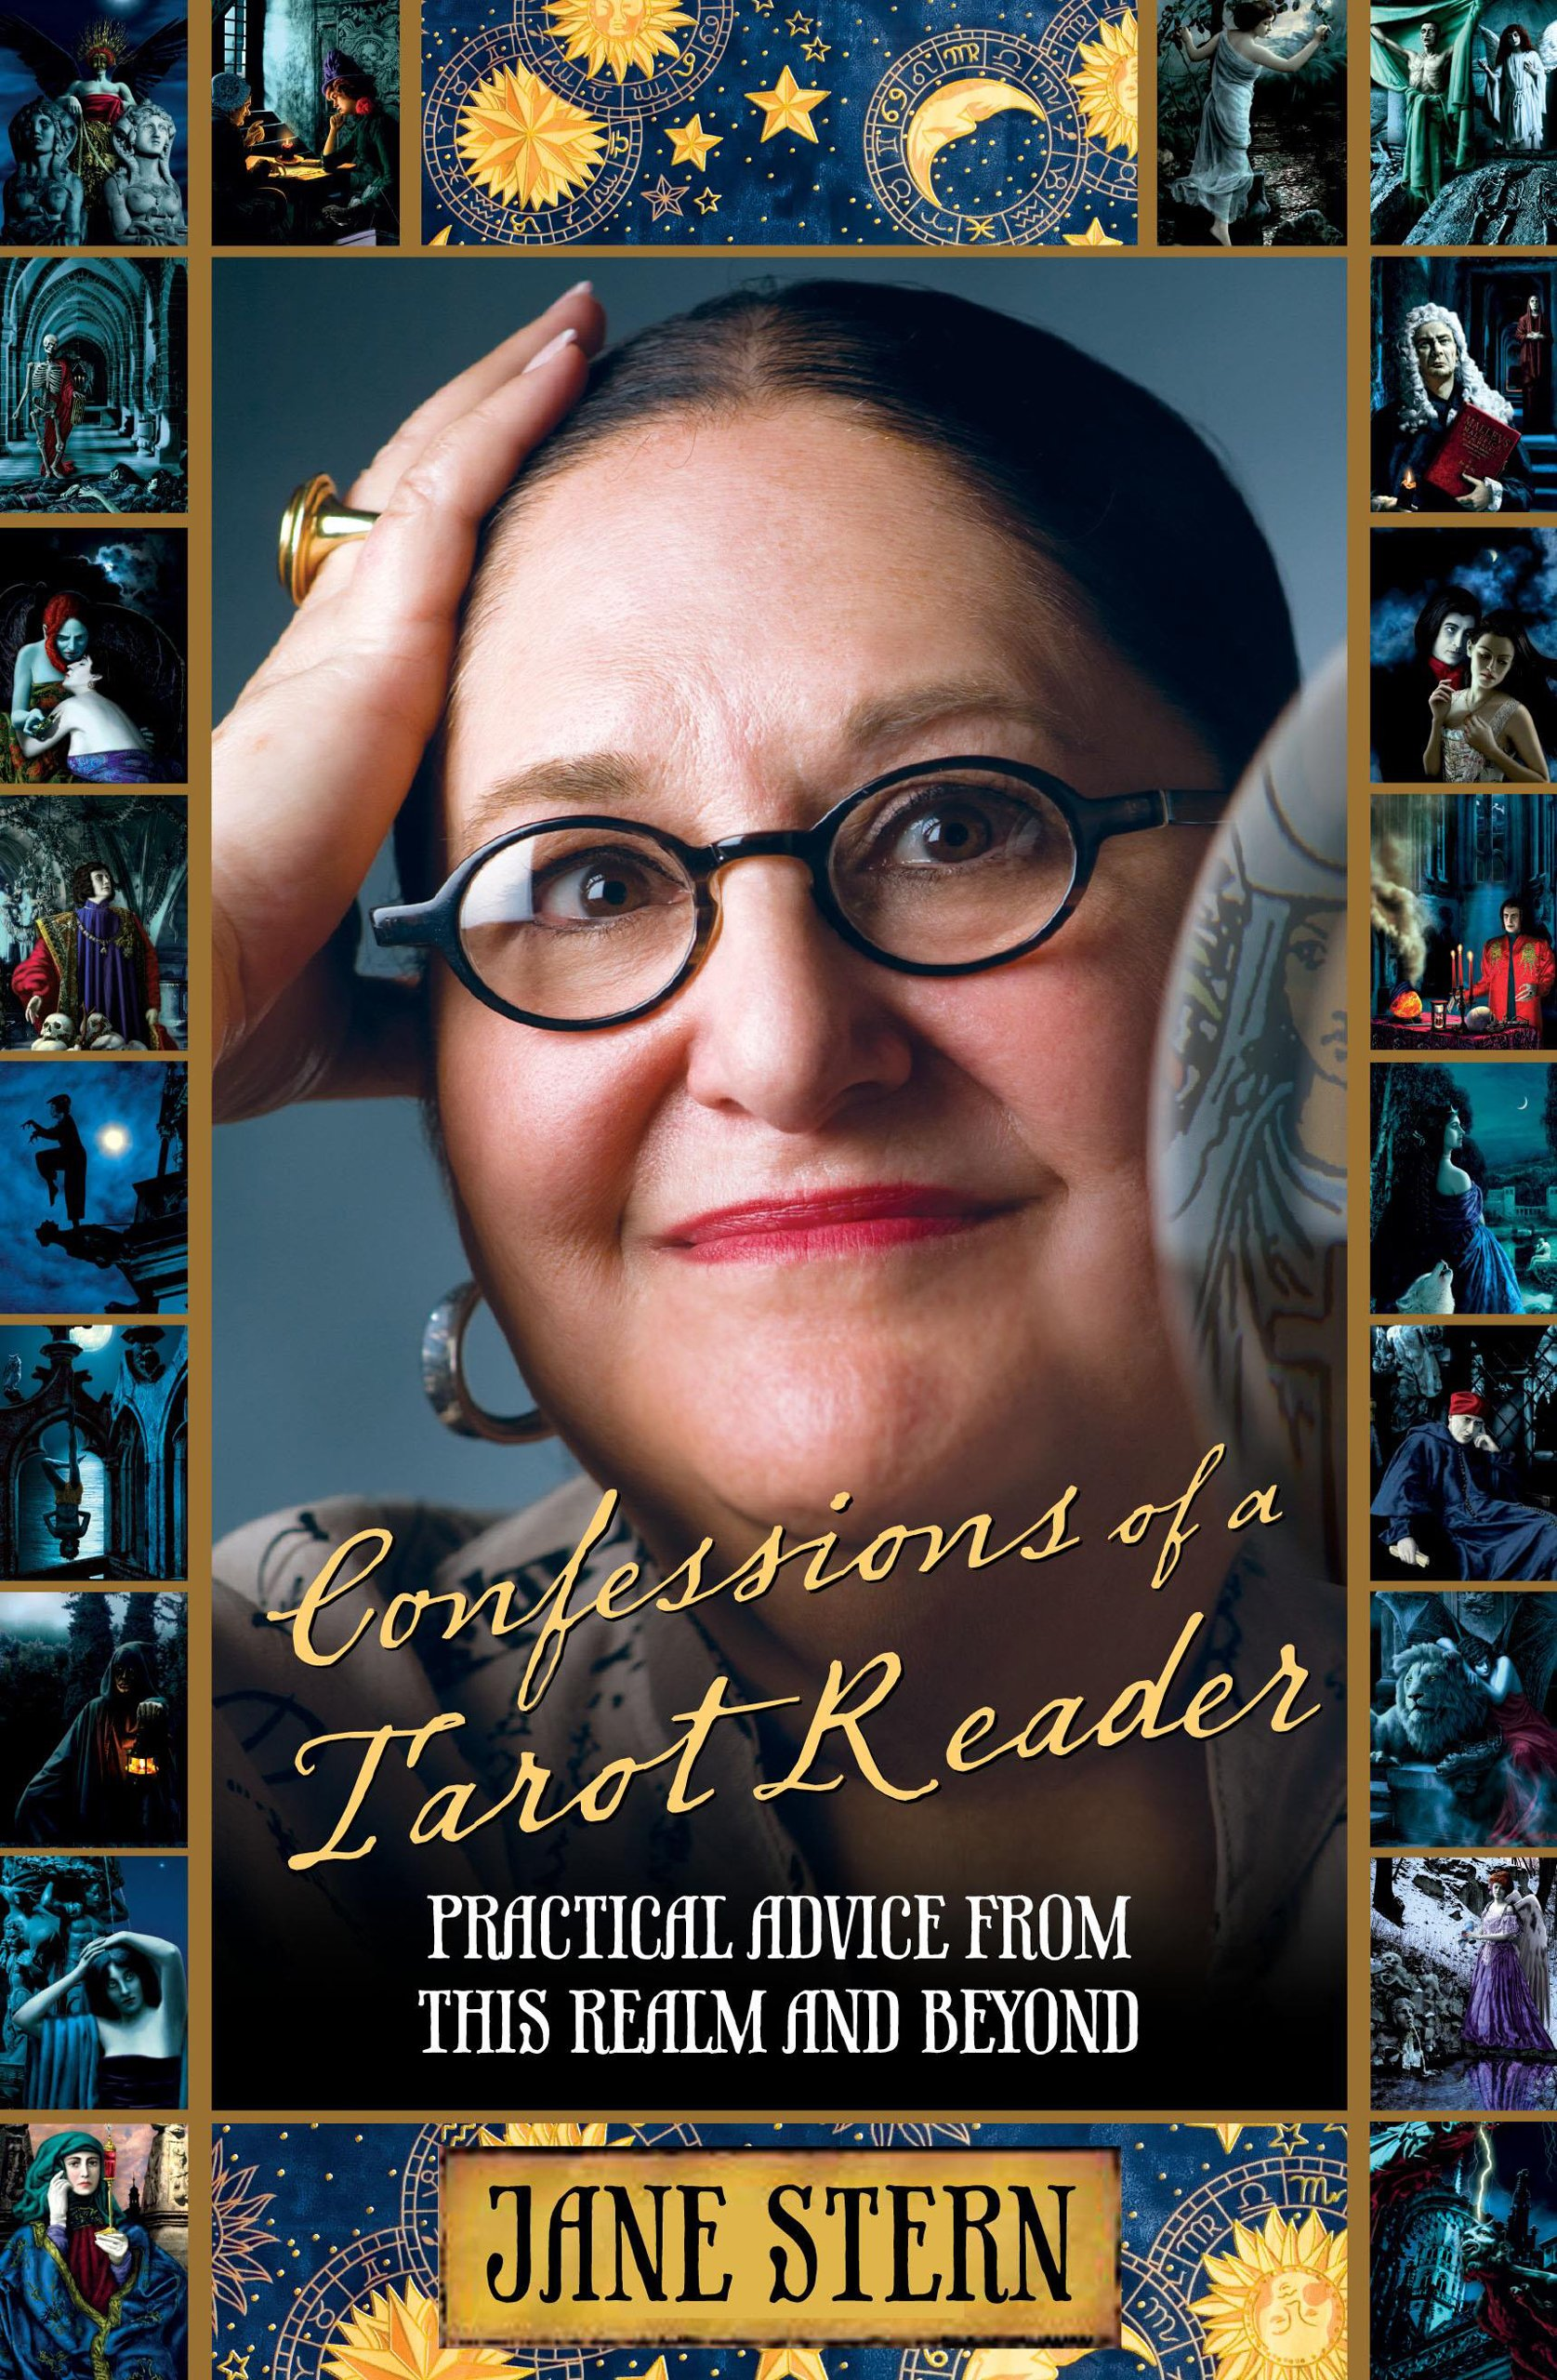 Buy Confessions Of A Tarot Reader Practical Advice From This Realm And Beyond Book Online At Low Prices In India Confessions Of A Tarot Reader Practical Advice From This Realm And